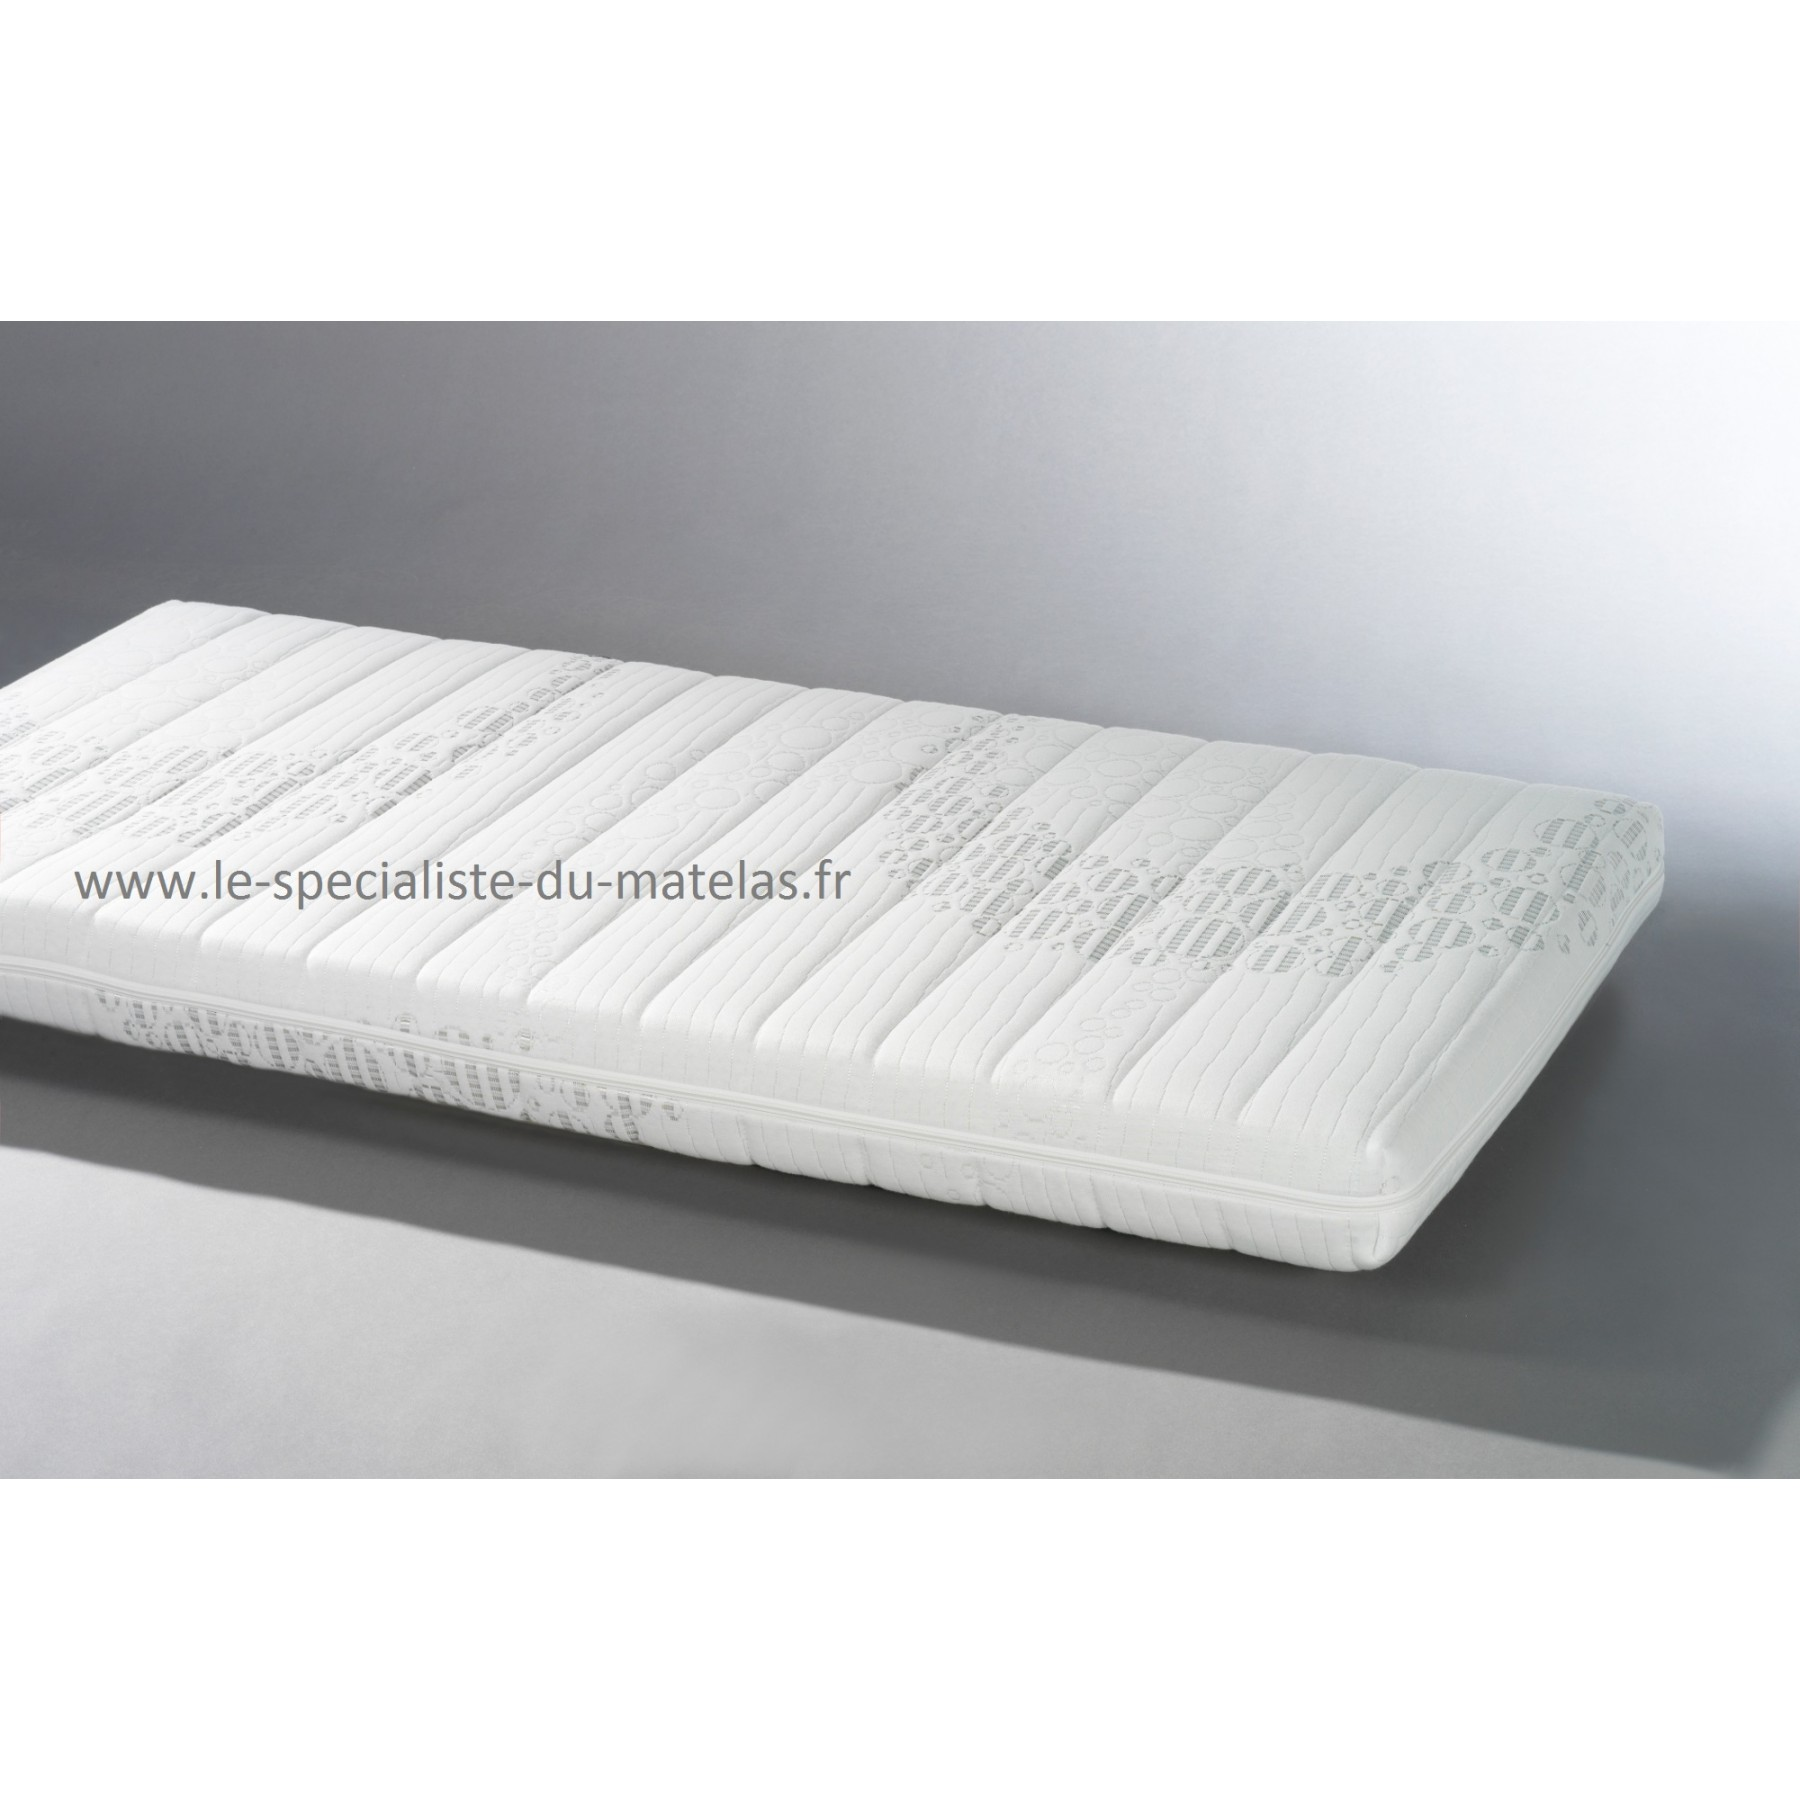 matelas b b en mousse haute r silience le sp cialiste. Black Bedroom Furniture Sets. Home Design Ideas